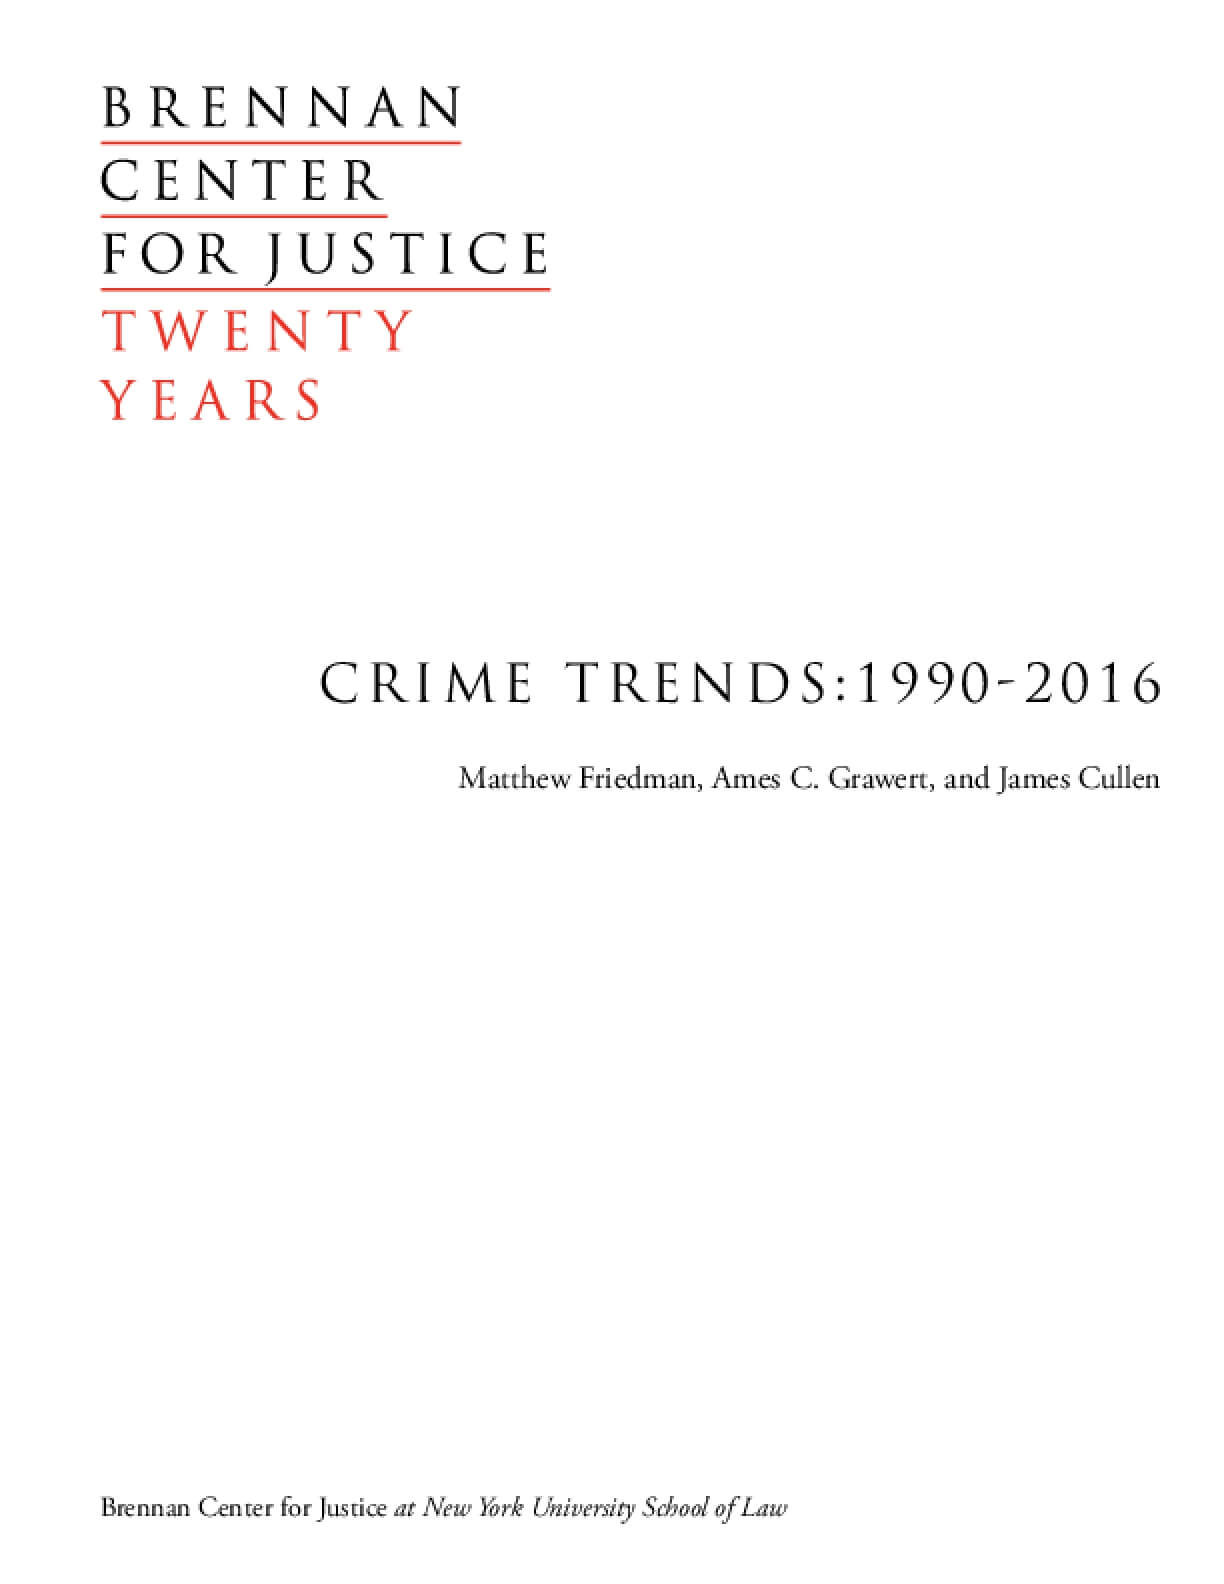 Crime Trends: 1990-2016